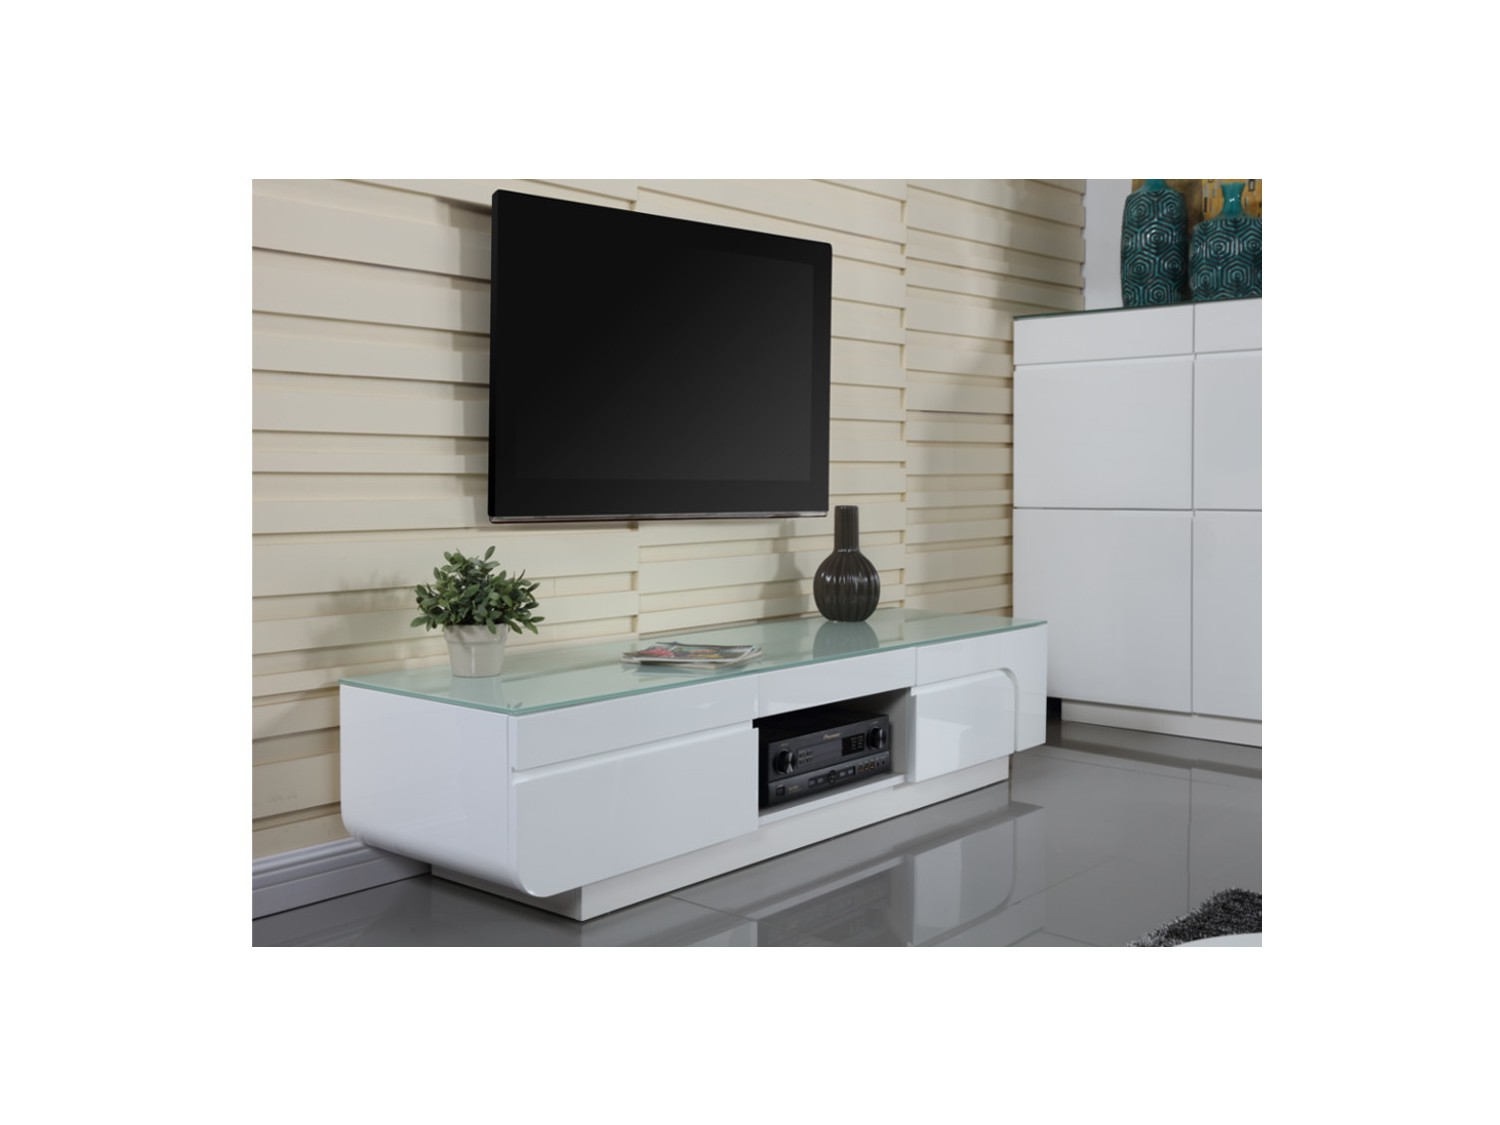 Meuble Tv En Verre Id Es De D Coration Int Rieure French Decor # Table Tv En Vitre